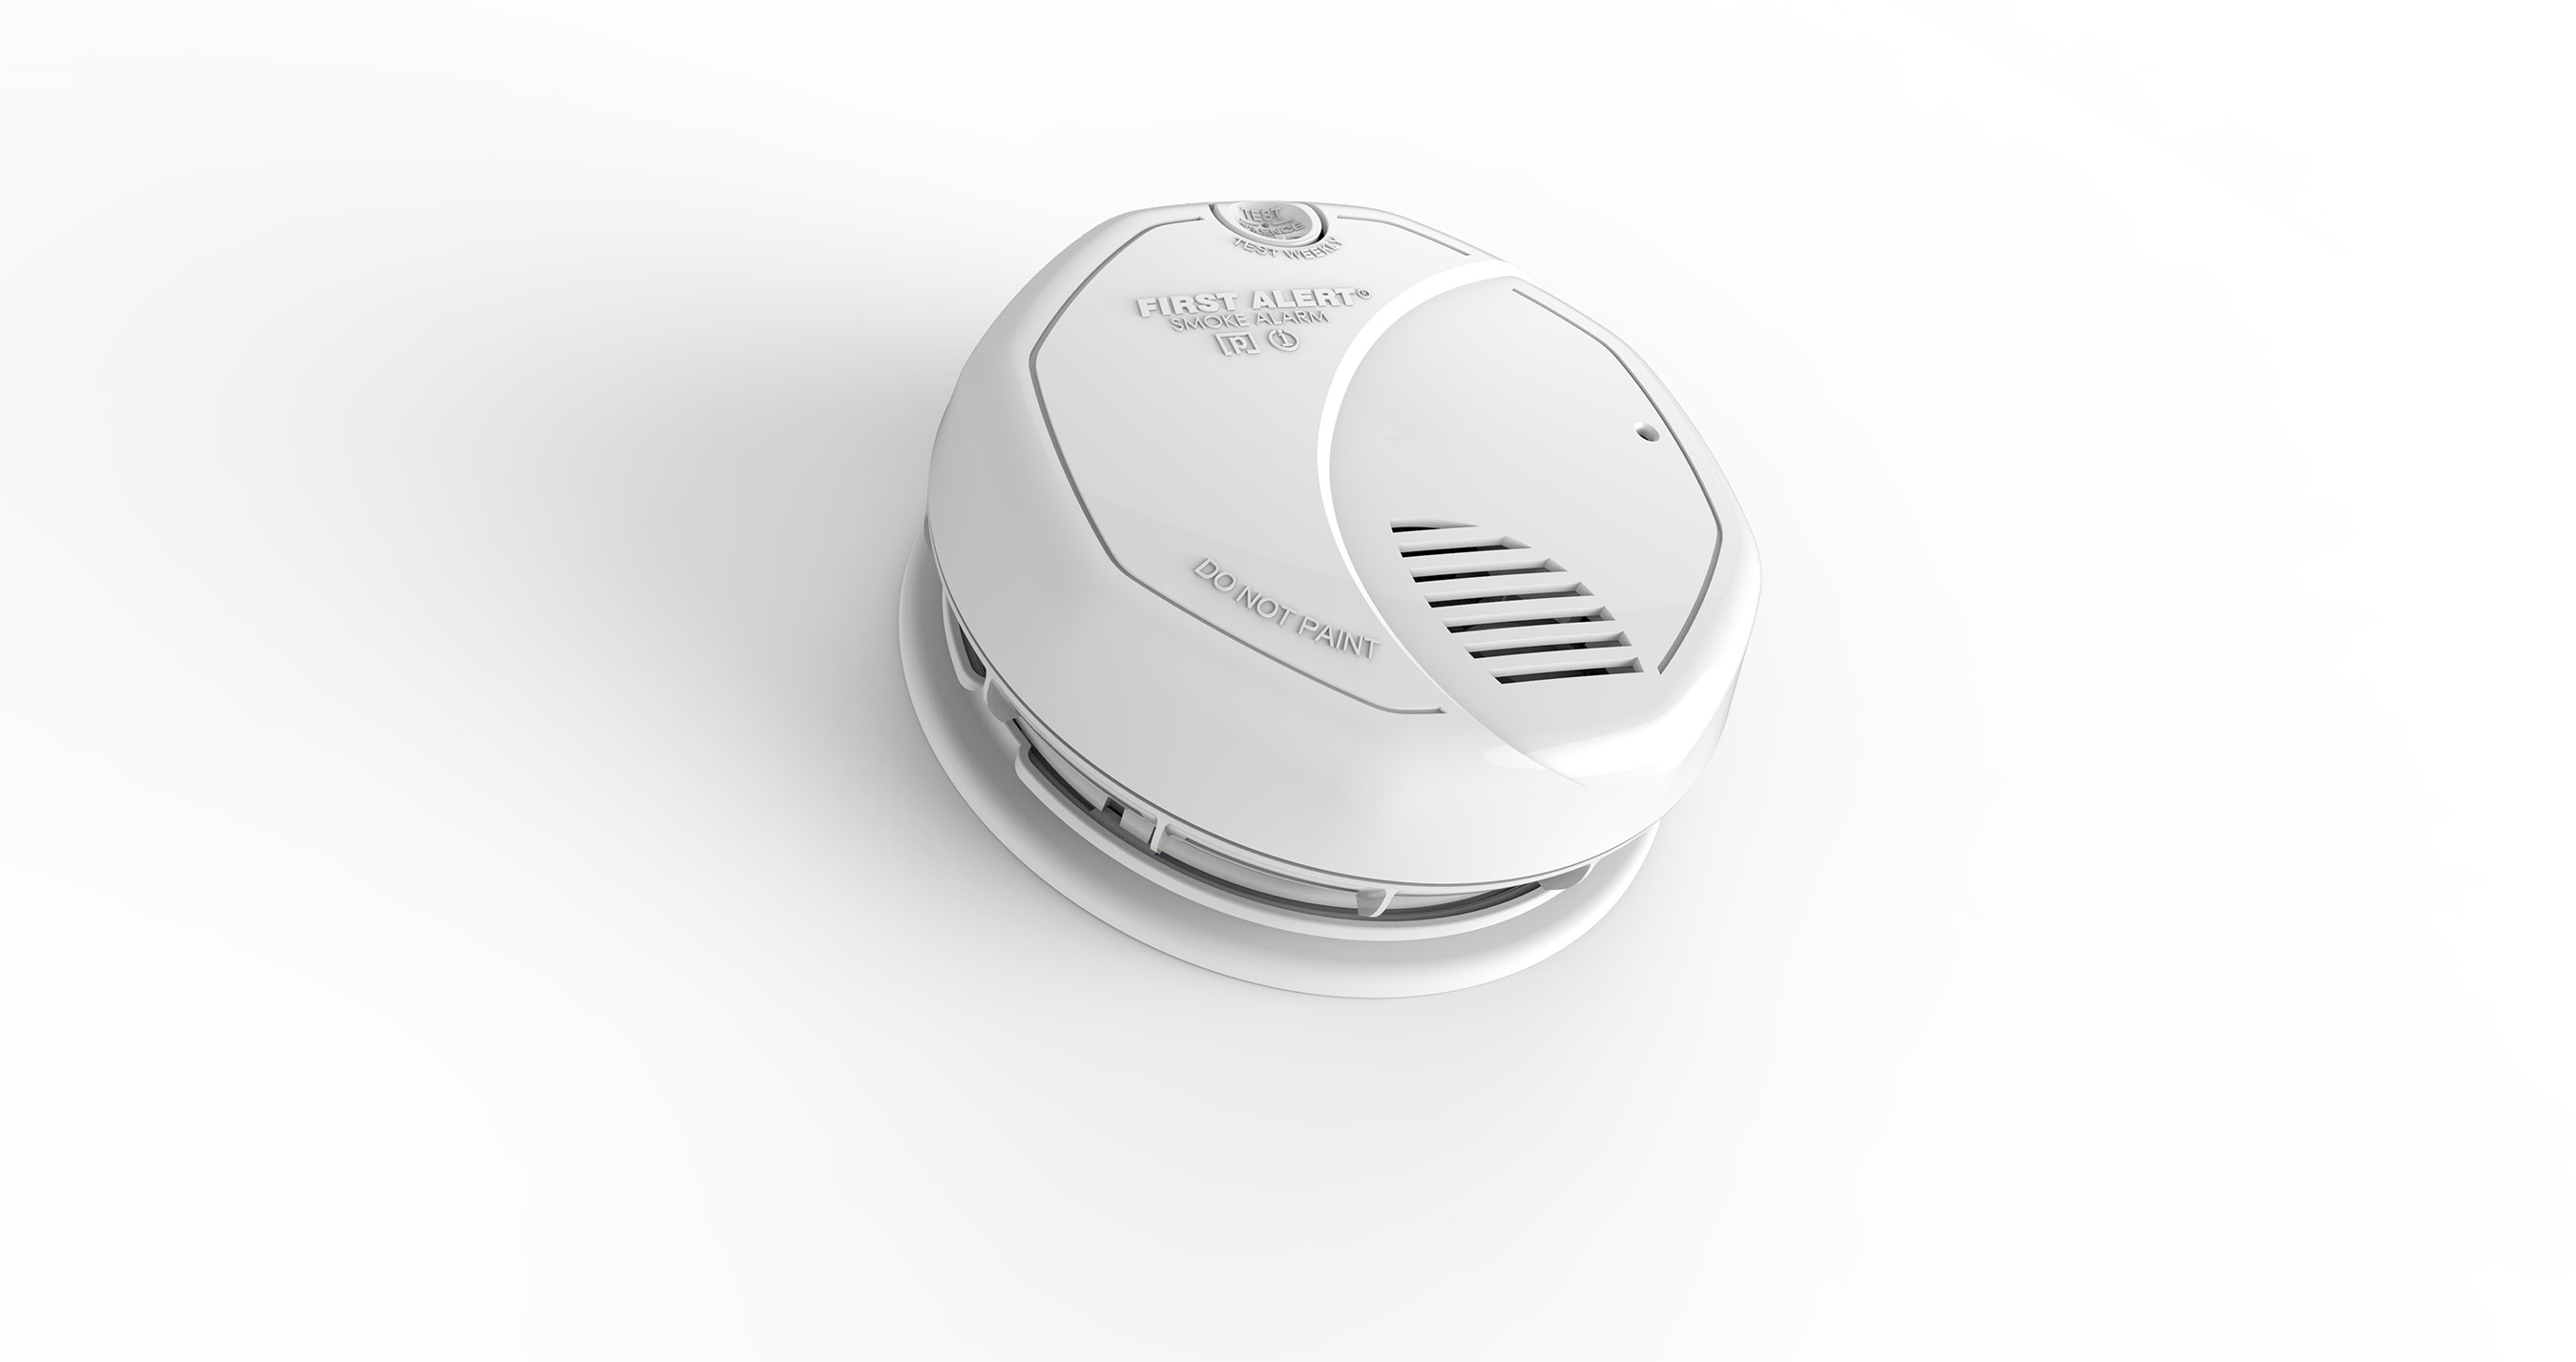 With both ionization and photoelectric smoke sensors, the First Alert 10-Year Alarm Life Dual Sensor Smoke & Fire Alarm delivers maximum home protection from both smoldering and fast-flaming fires.